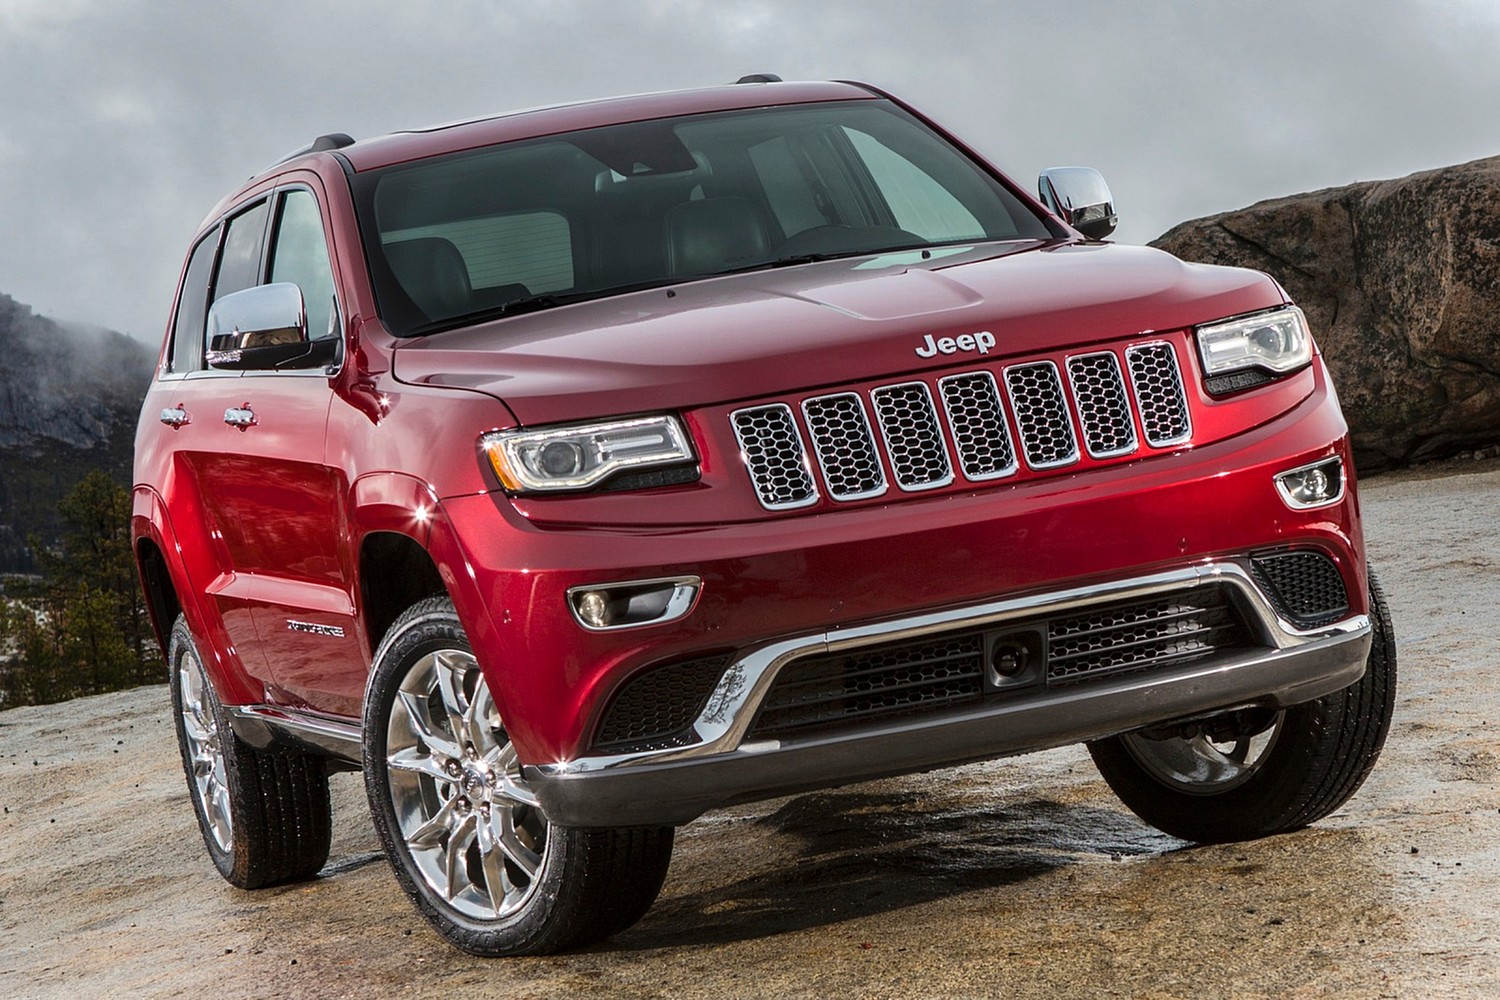 Jeep Grand Cherokee Summit 4dr SUV Exterior (2014 model year shown)